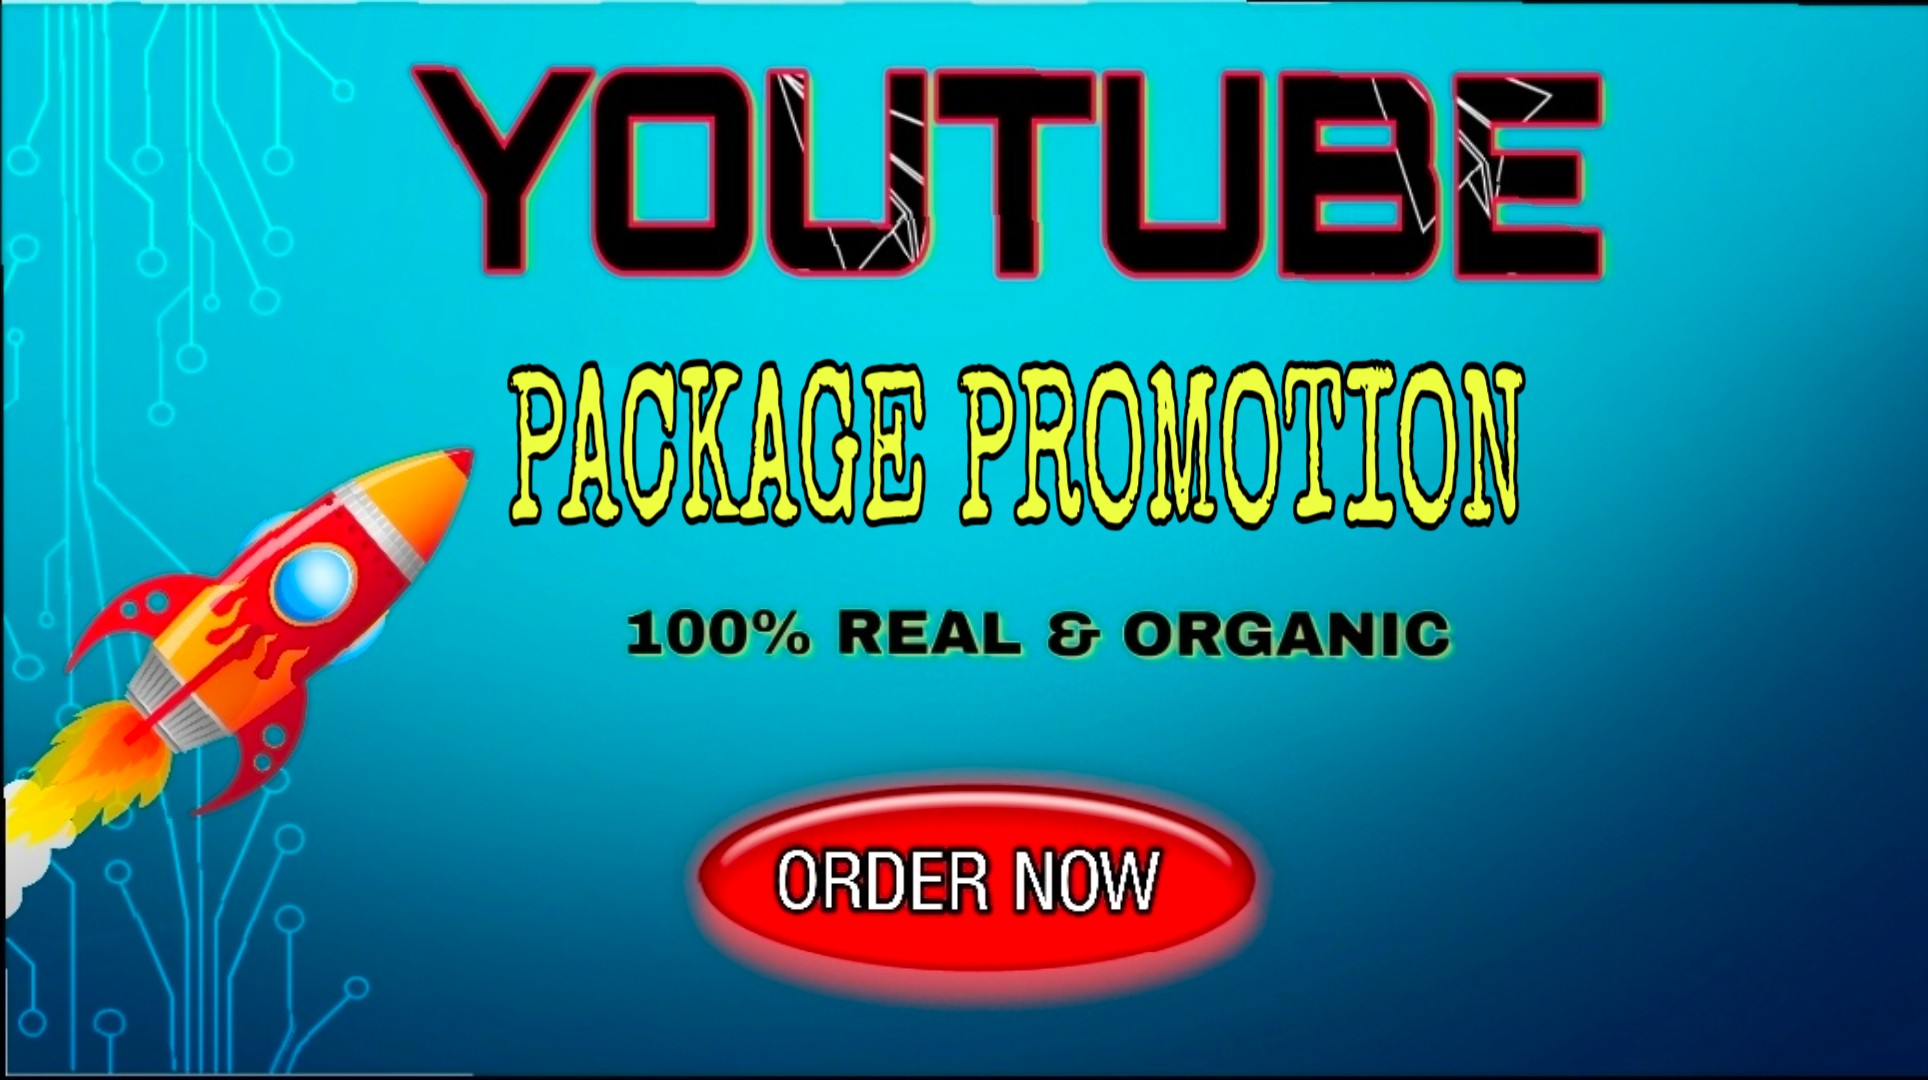 Best YT video package promo-tion for you only for 5